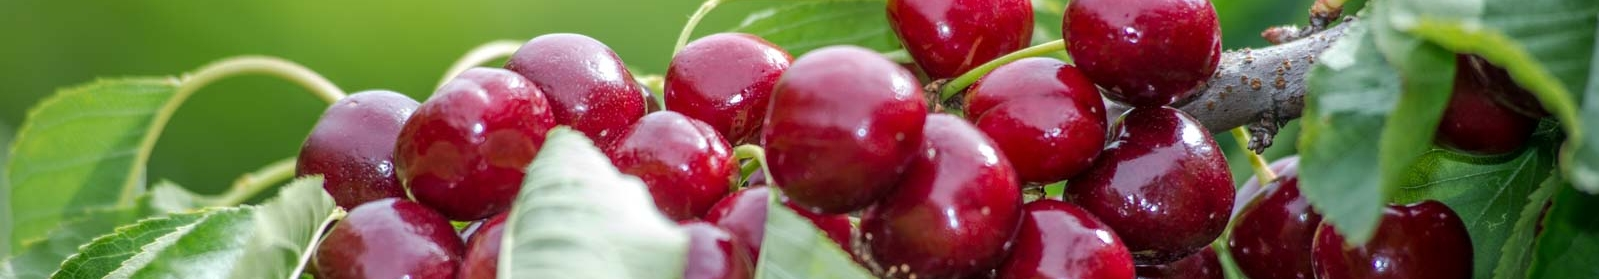 cherries-header